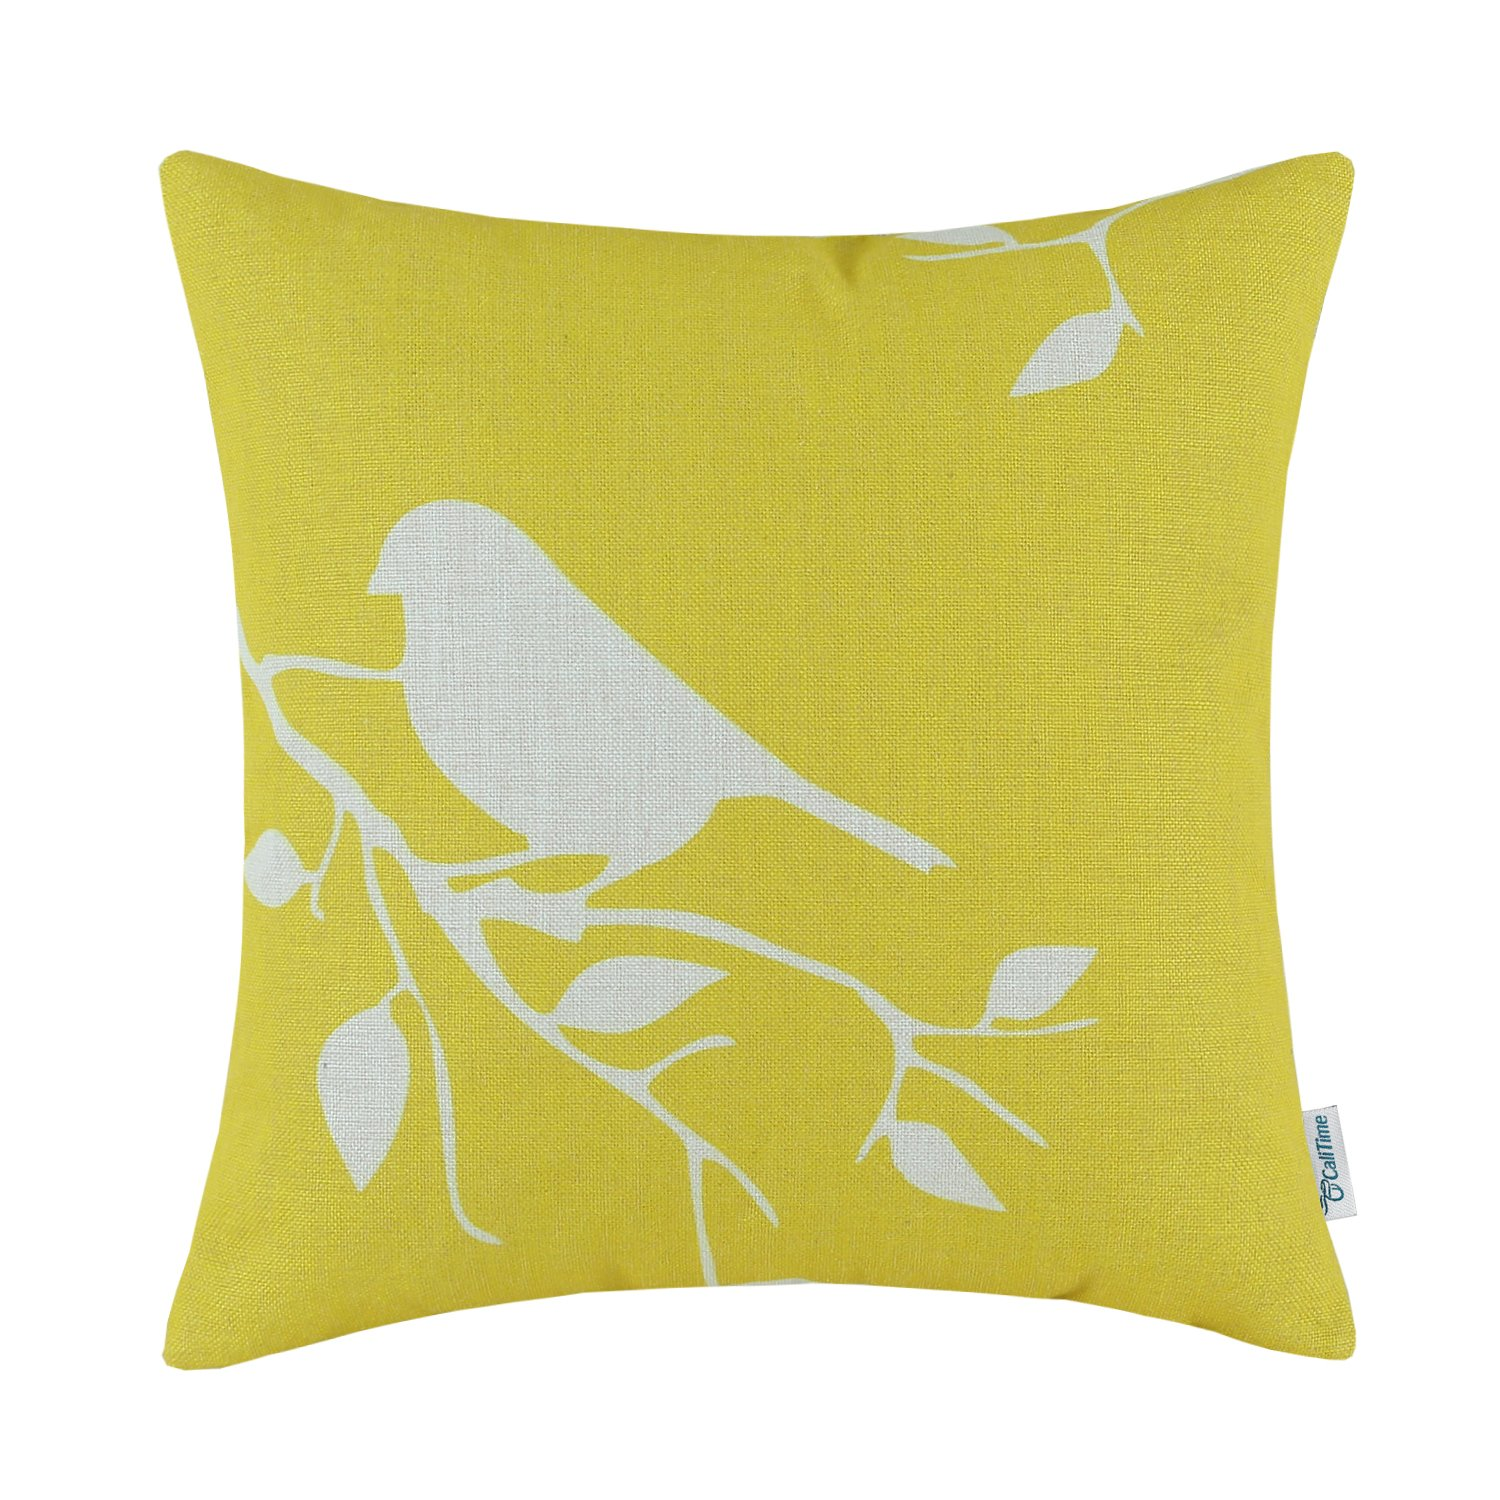 CaliTime Canvas Throw Pillow Cover Case Couch Sofa Home Decoration Cute Bird Tree Branches Silhouette 18 X 18 inches Vibrant Yellow